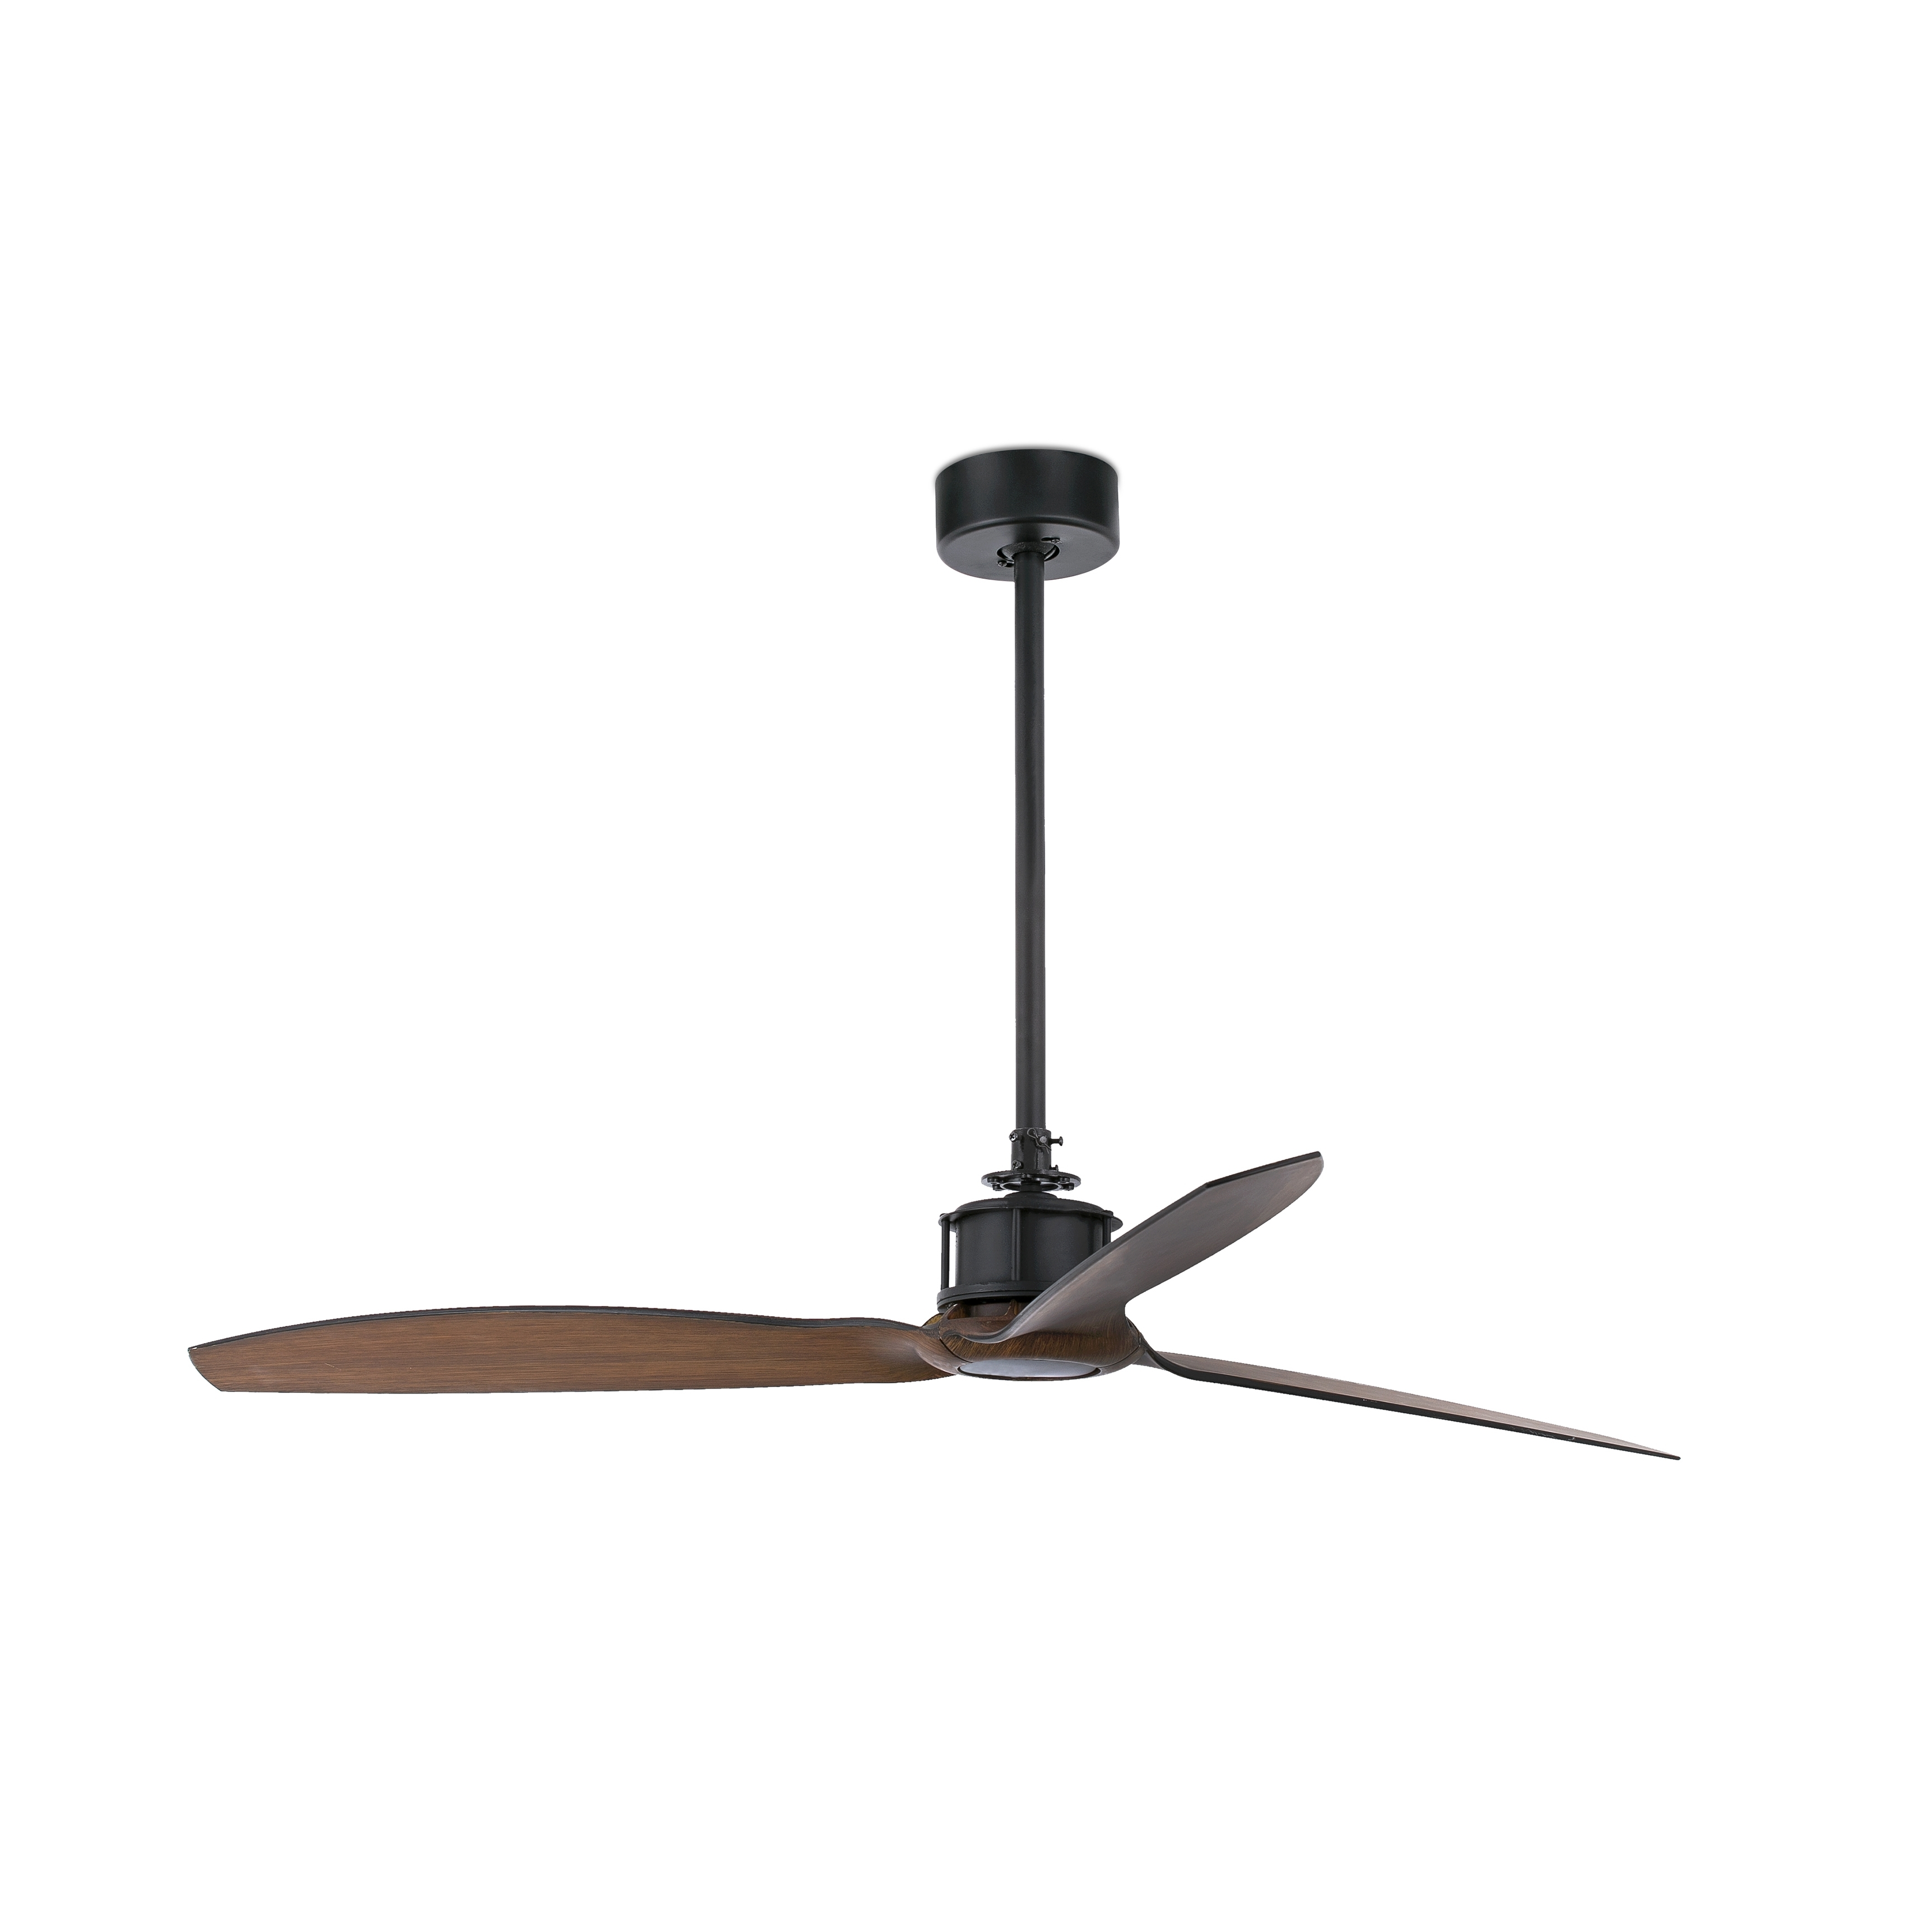 Outdoor Ceiling Fans With Dc Motors For Widely Used Just Fan Black/wood Ceiling Fan With Dc Motor – Faro (View 11 of 20)